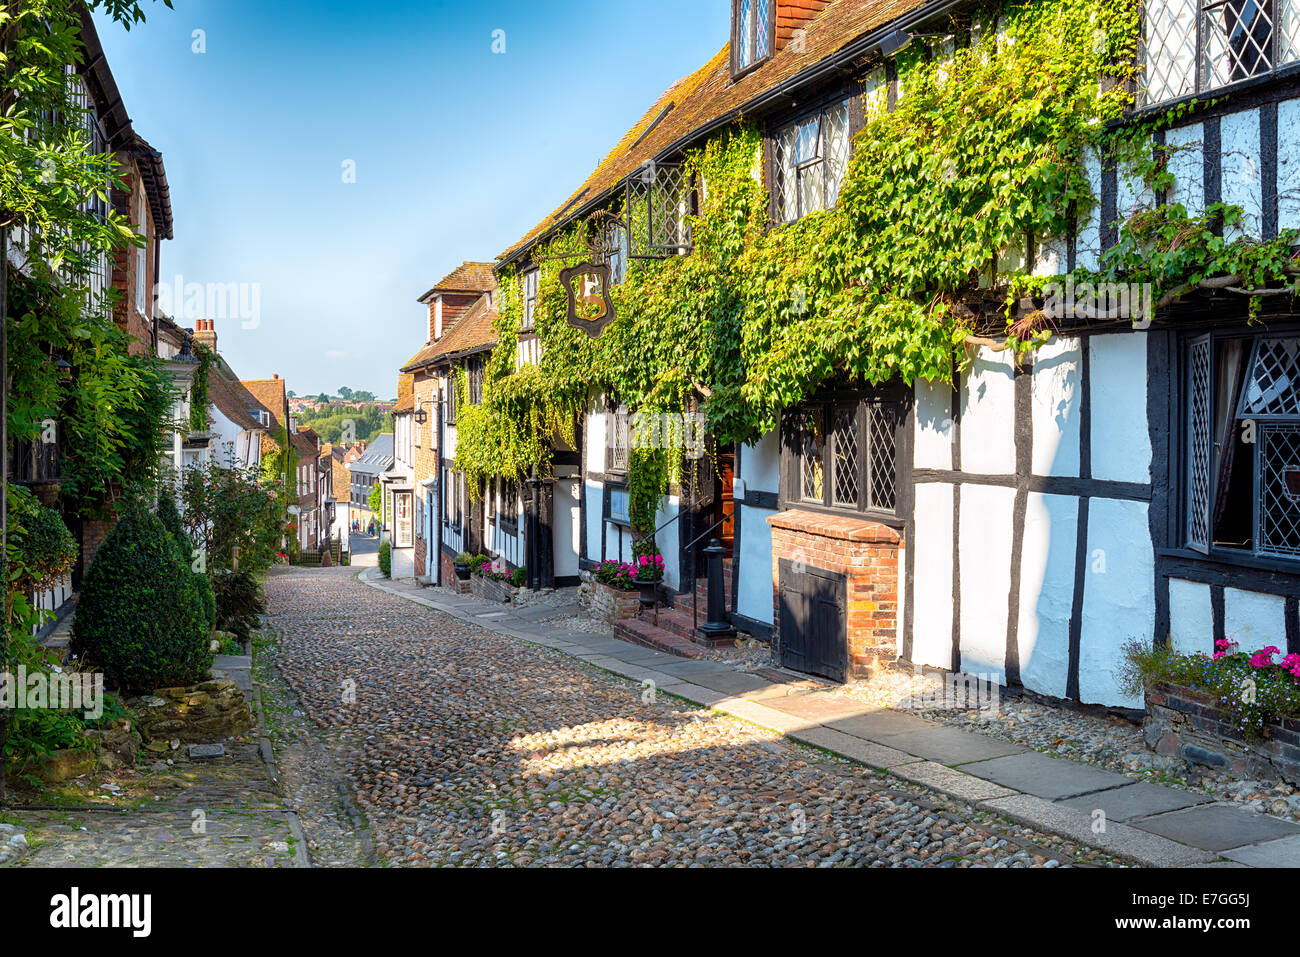 A beautiful cobbled street in the historic town of Rye in East Sussex - Stock Image